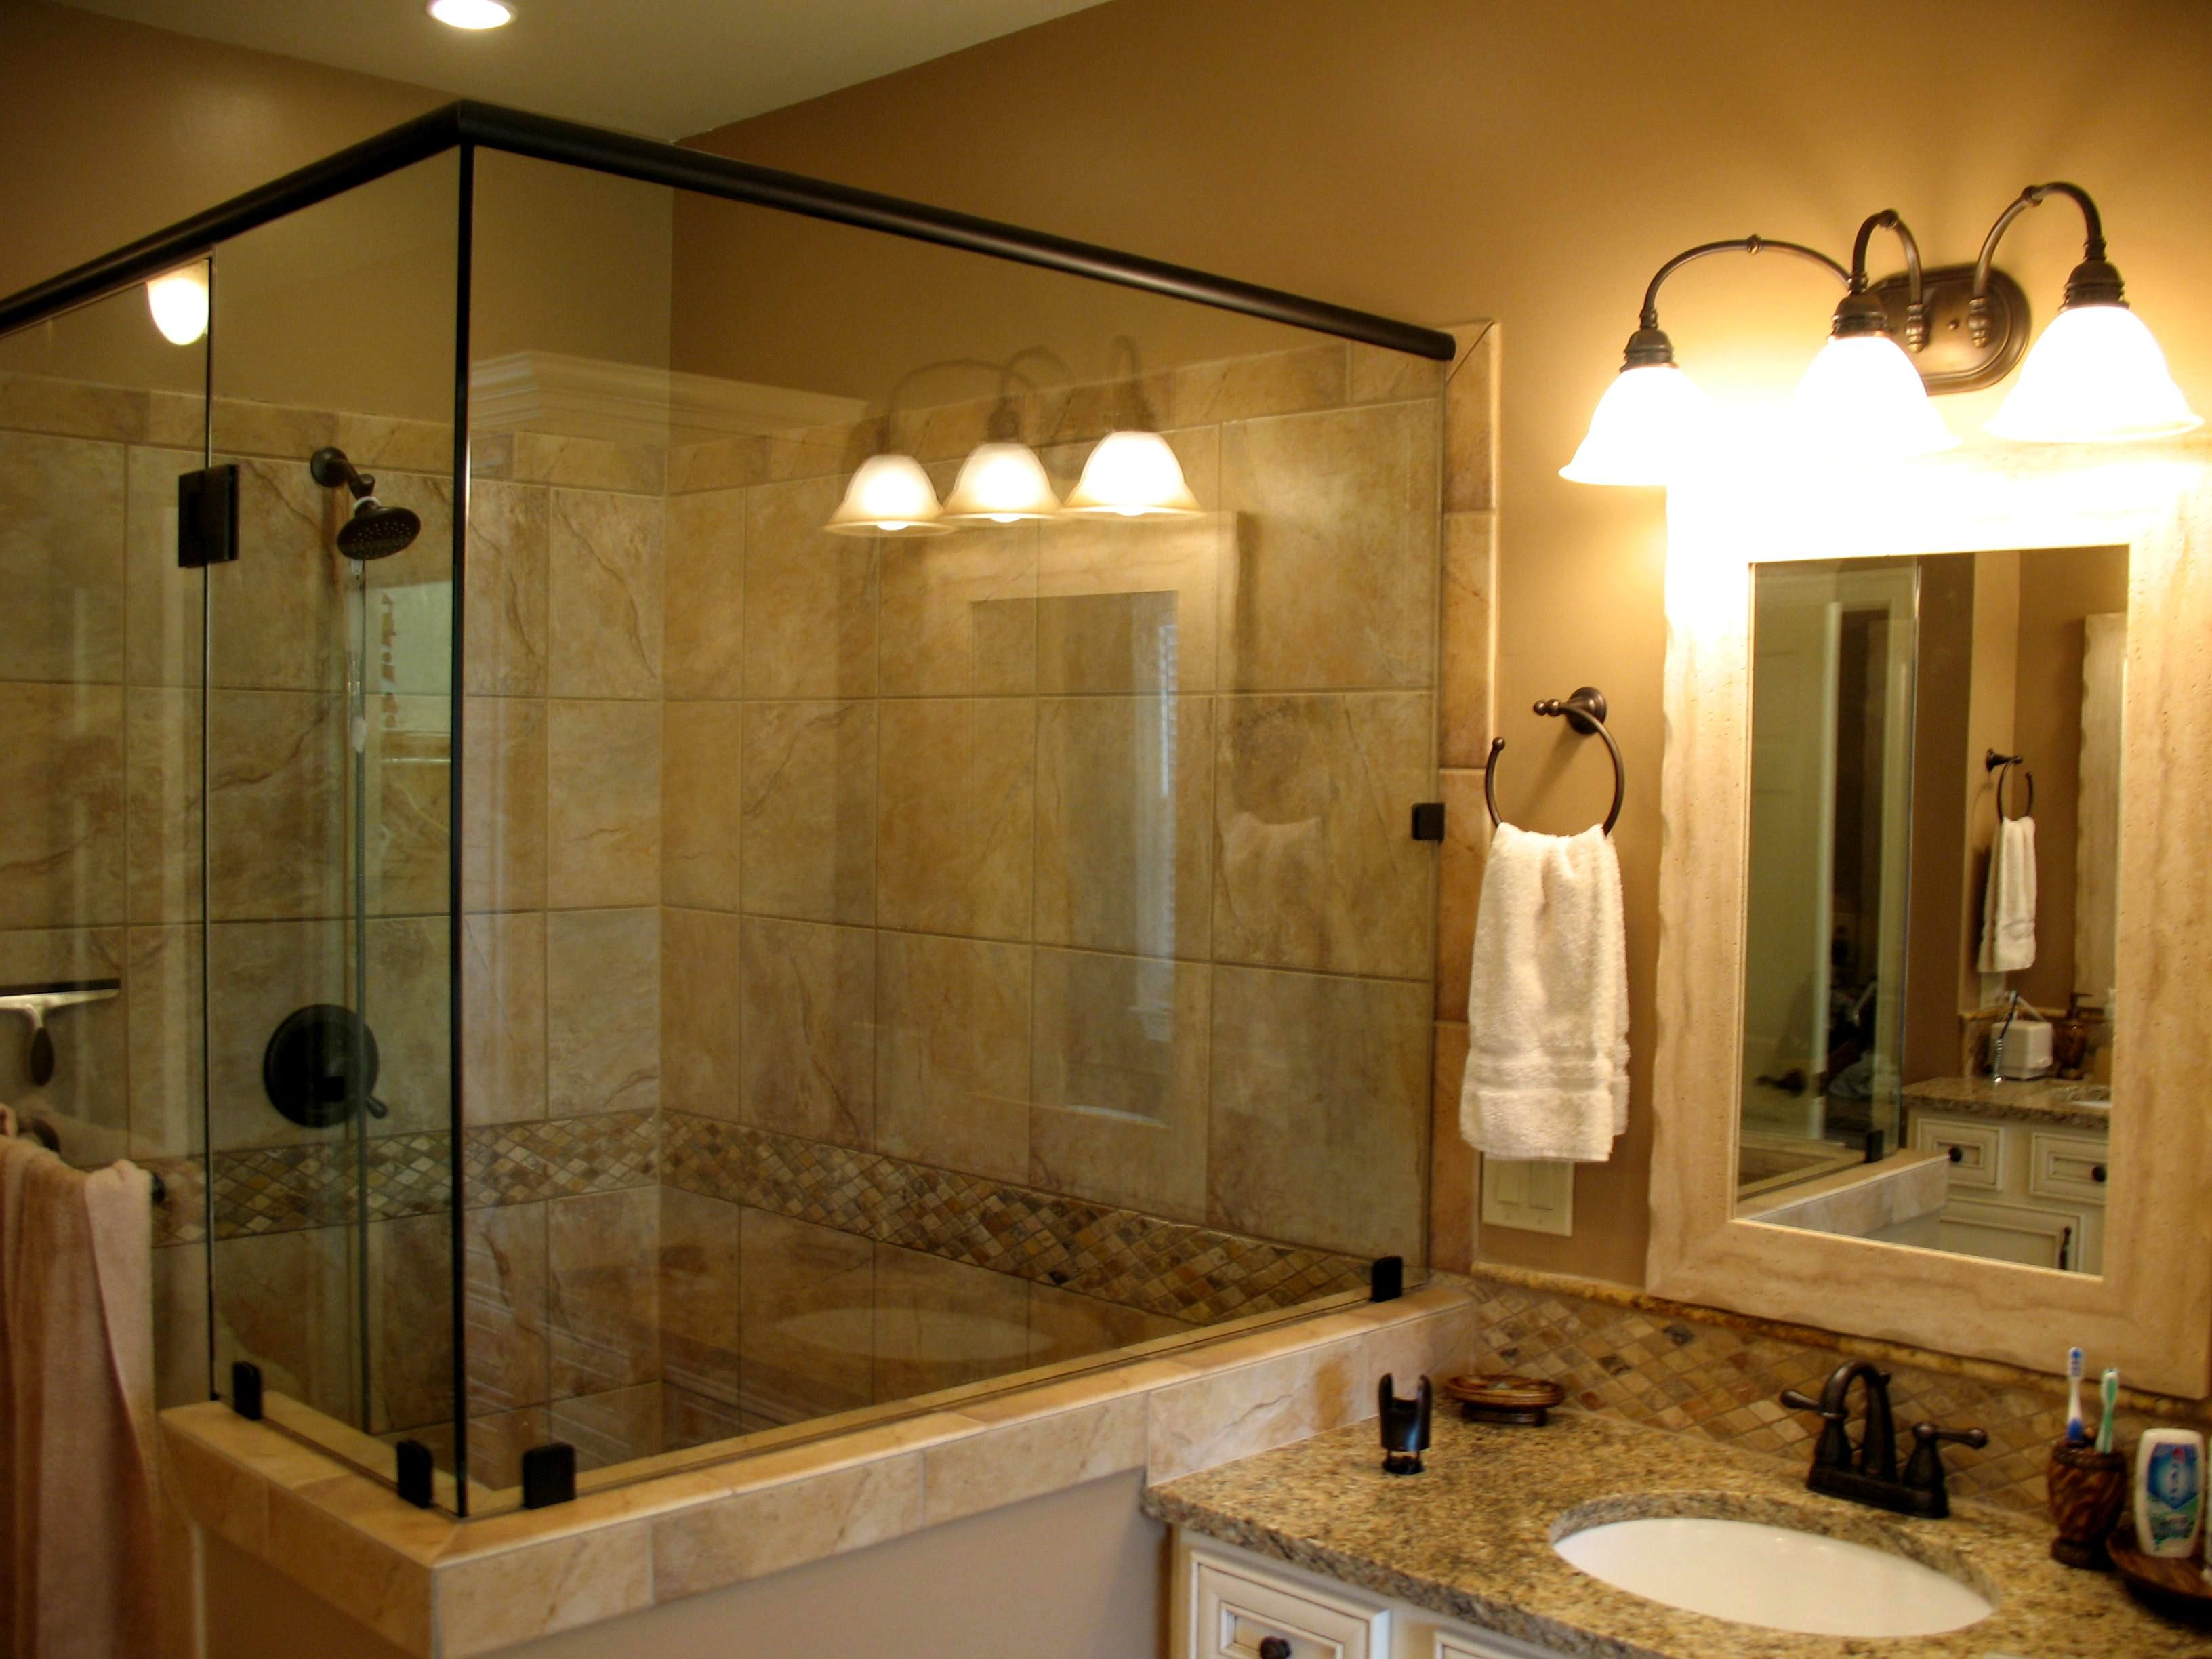 Master bathroom shower ideas to get ideas how to redecorate your